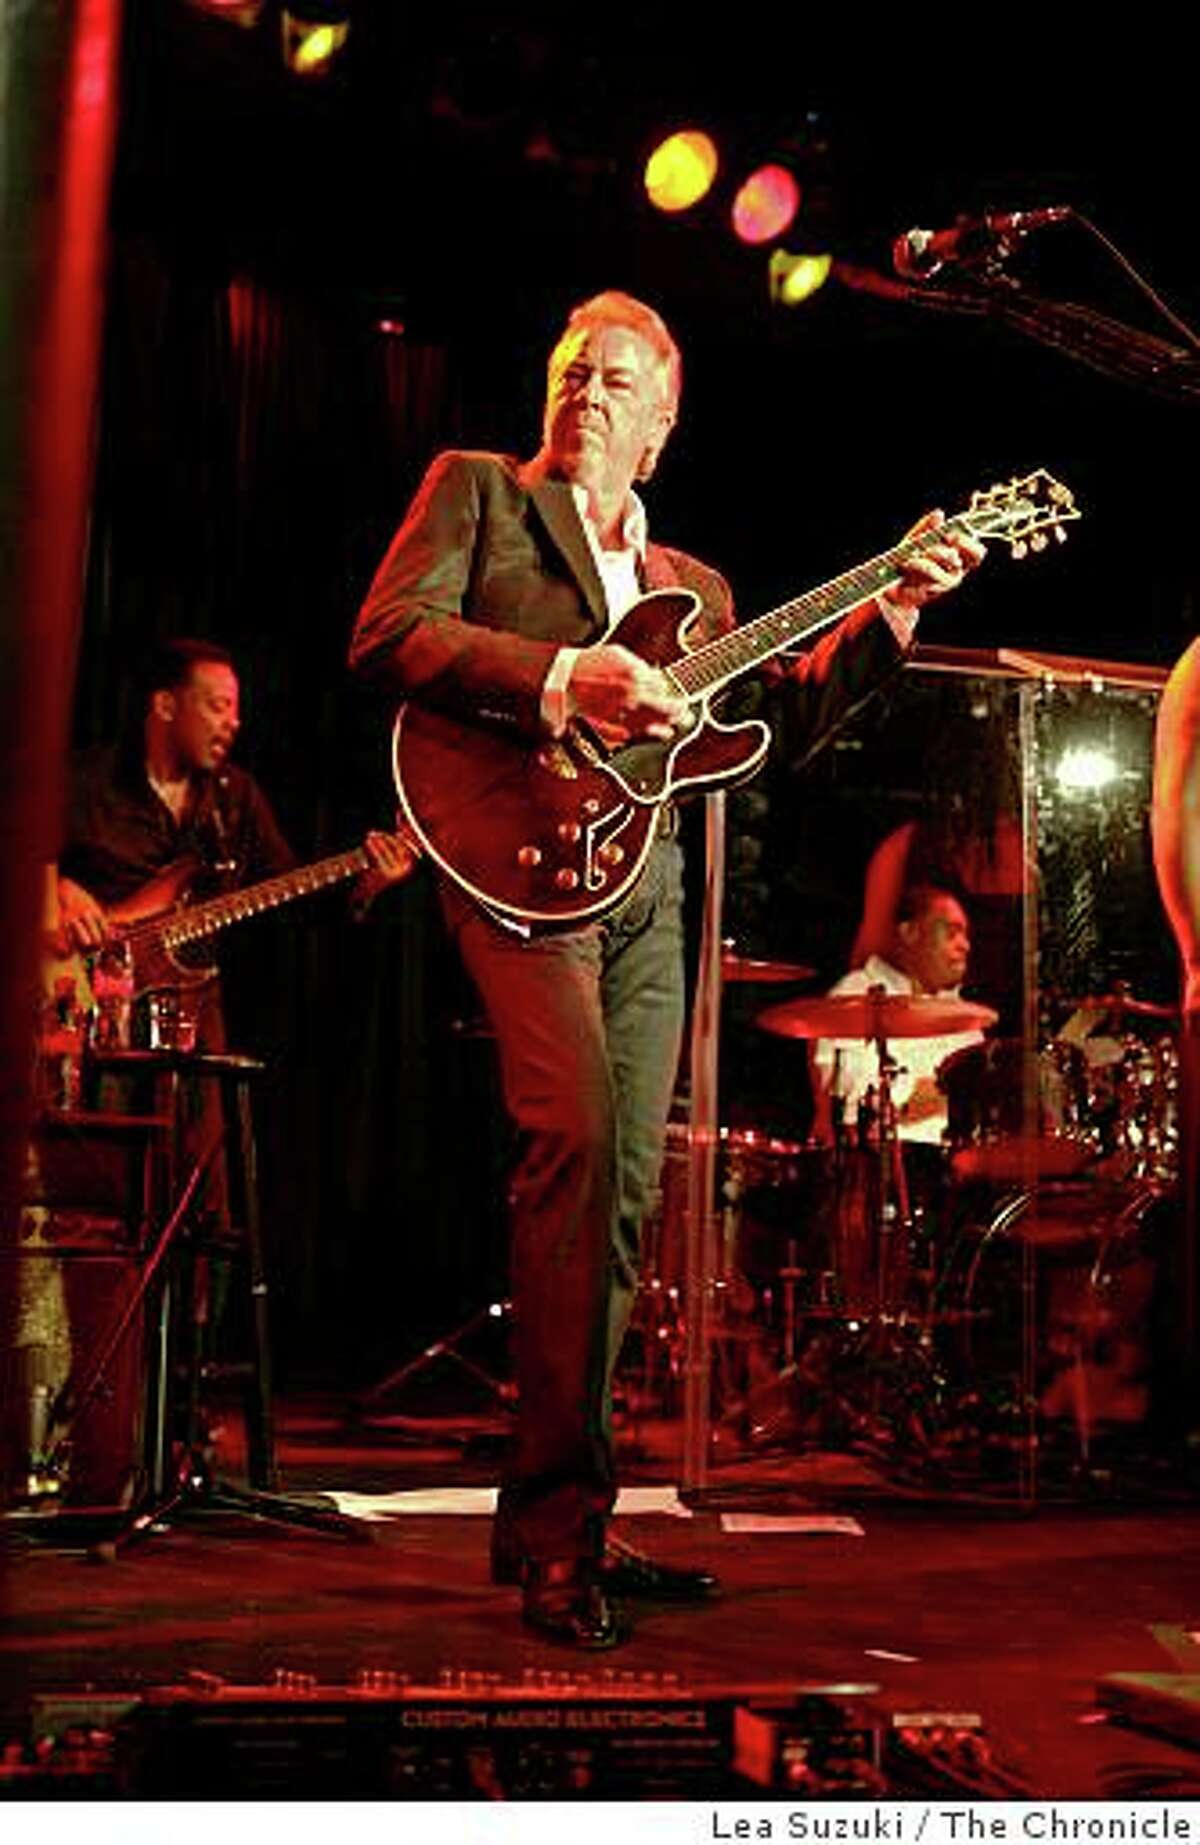 Boz Scaggs performs during a private party held to celebrate the 20th anniversary of Slims on Tuesday, October 14, 2008 in San Francisco, Calif.